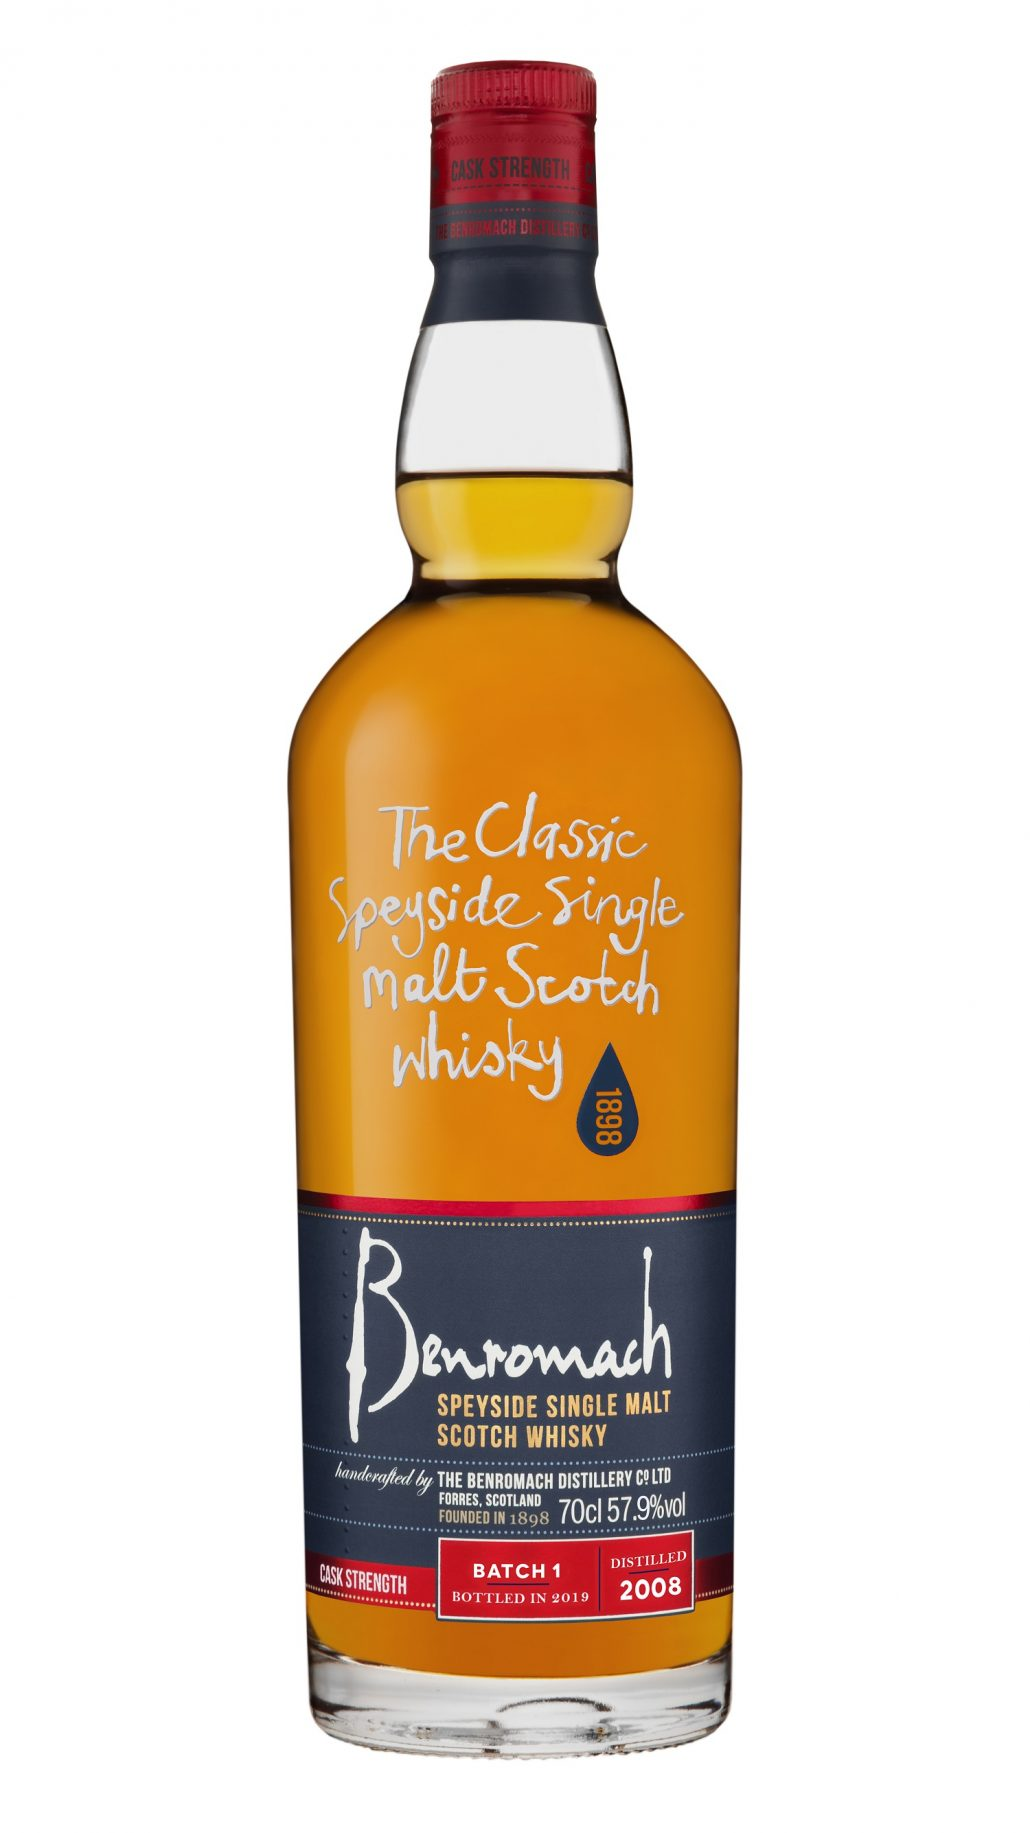 Benromach Cask Strength Vintage 2008 Batch 1